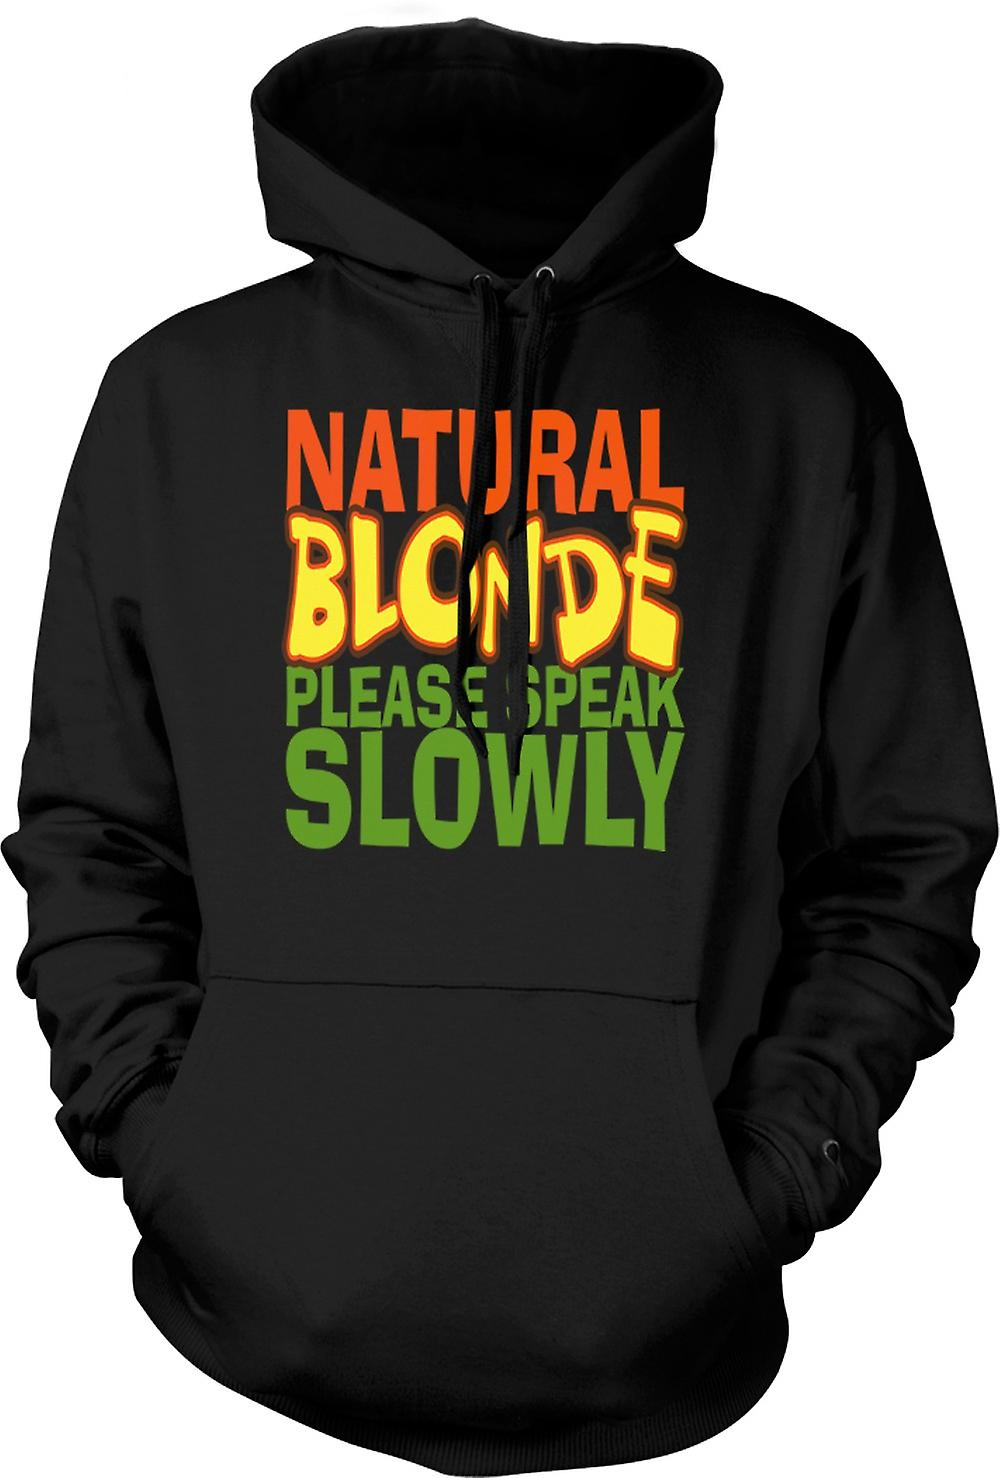 Mens Hoodie - Natural Blonde Speak Slowly - Quote